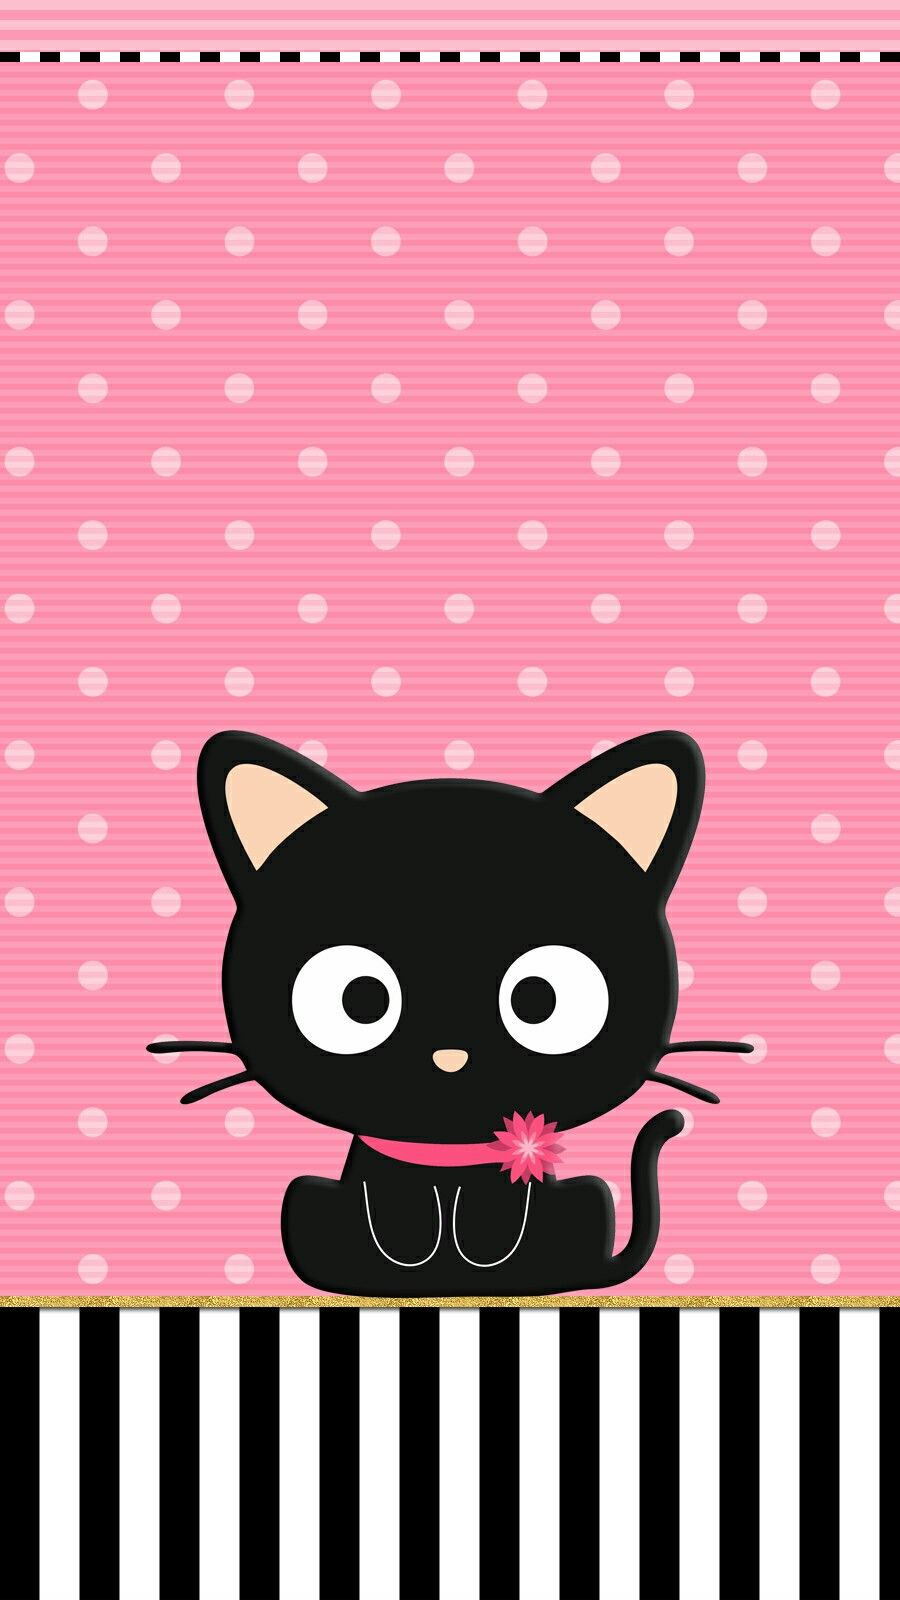 Chococat Wallpapers Top Free Chococat Backgrounds Wallpaperaccess